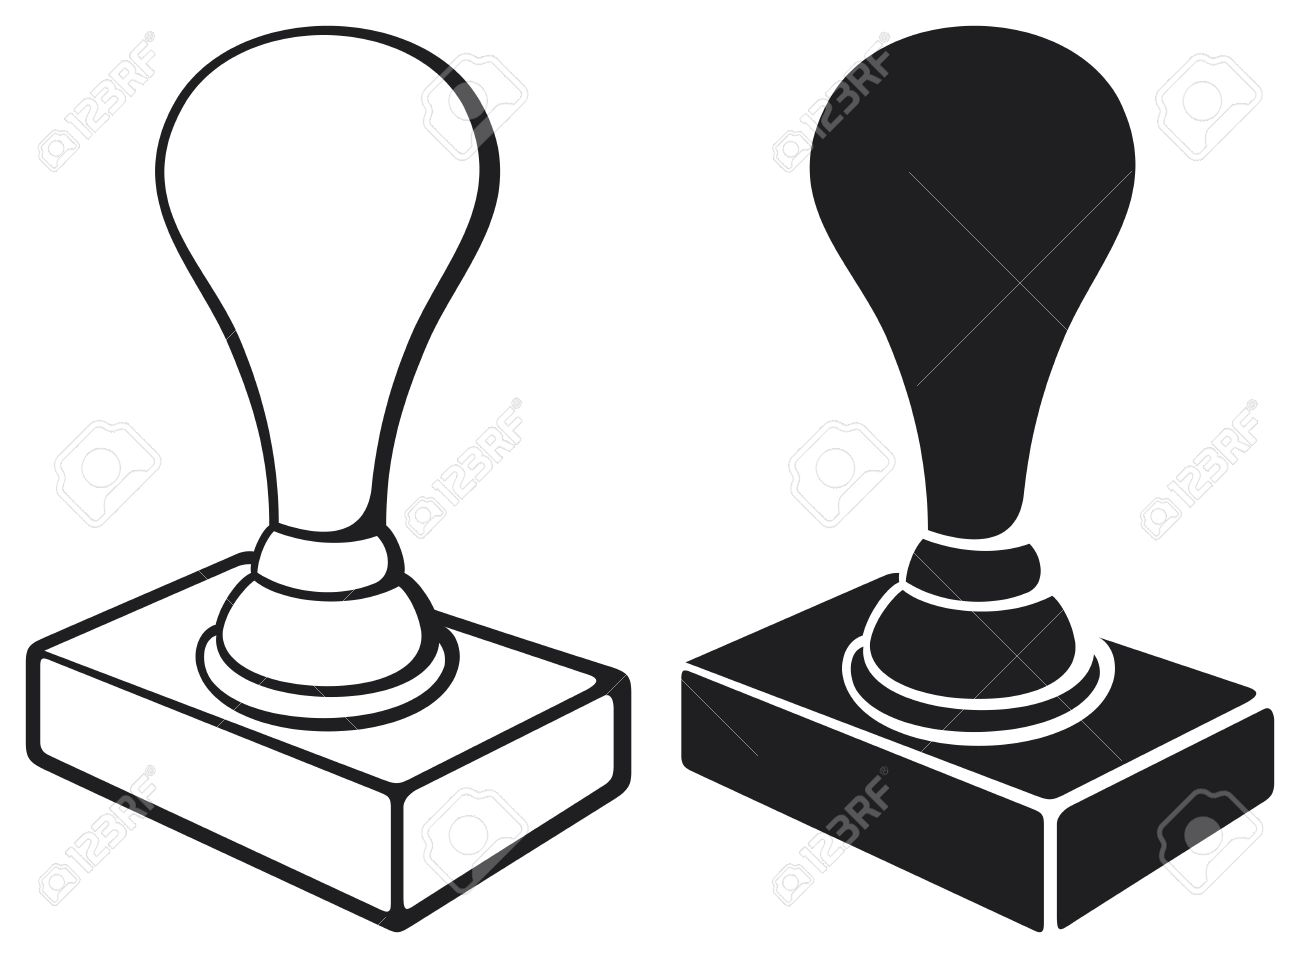 Rubber stamp clipart 2 » Clipart Station.